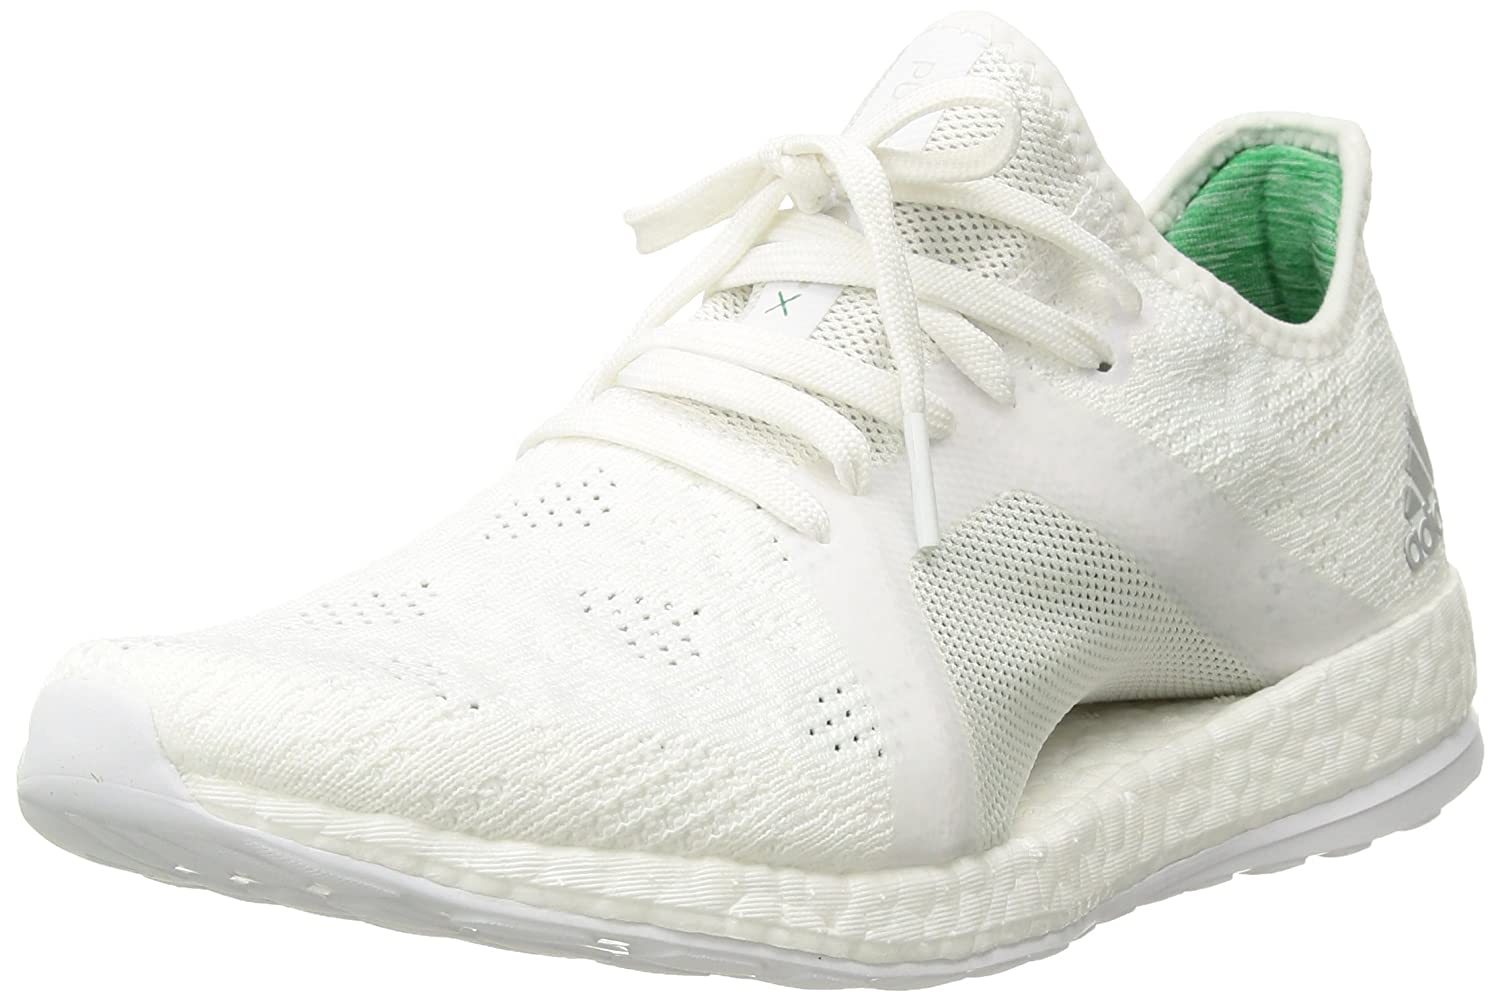 adidas Women's Pureboost X Element Running Shoe B071LF6KPX 6.5 B(M) US|White/Grey Two/Green